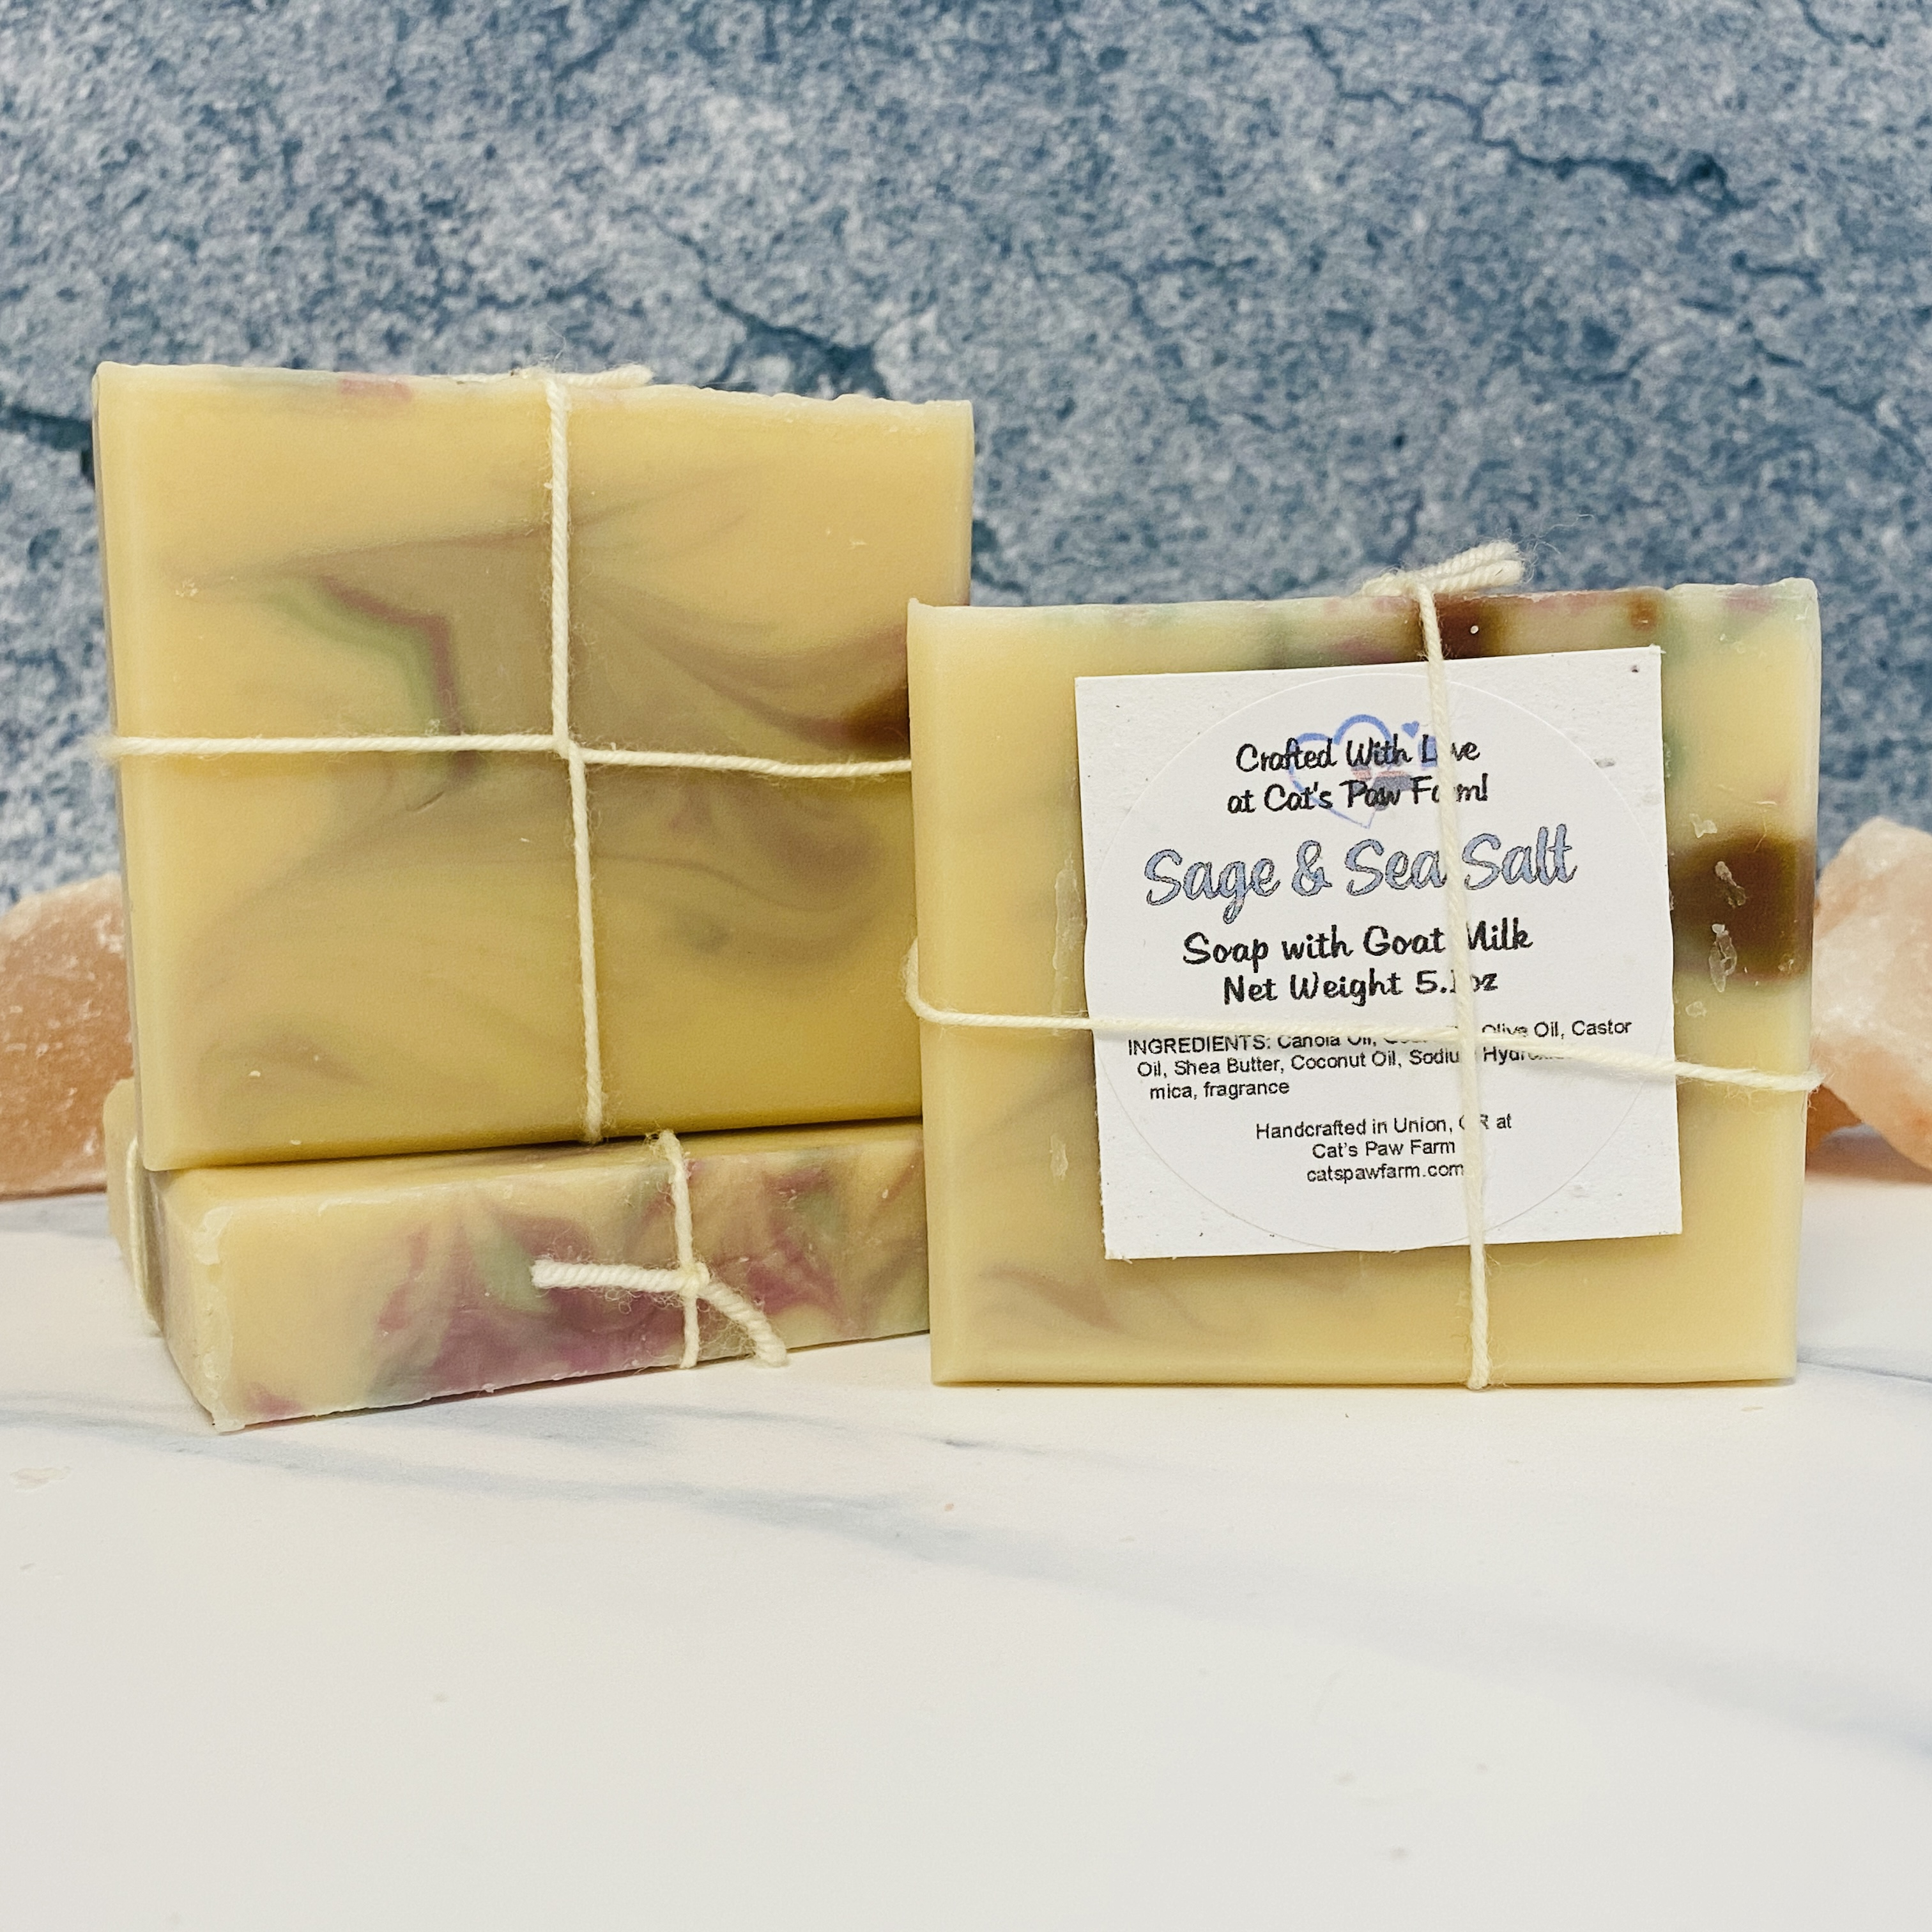 Sage & Sea Salt Scented Soap with Goat Milk